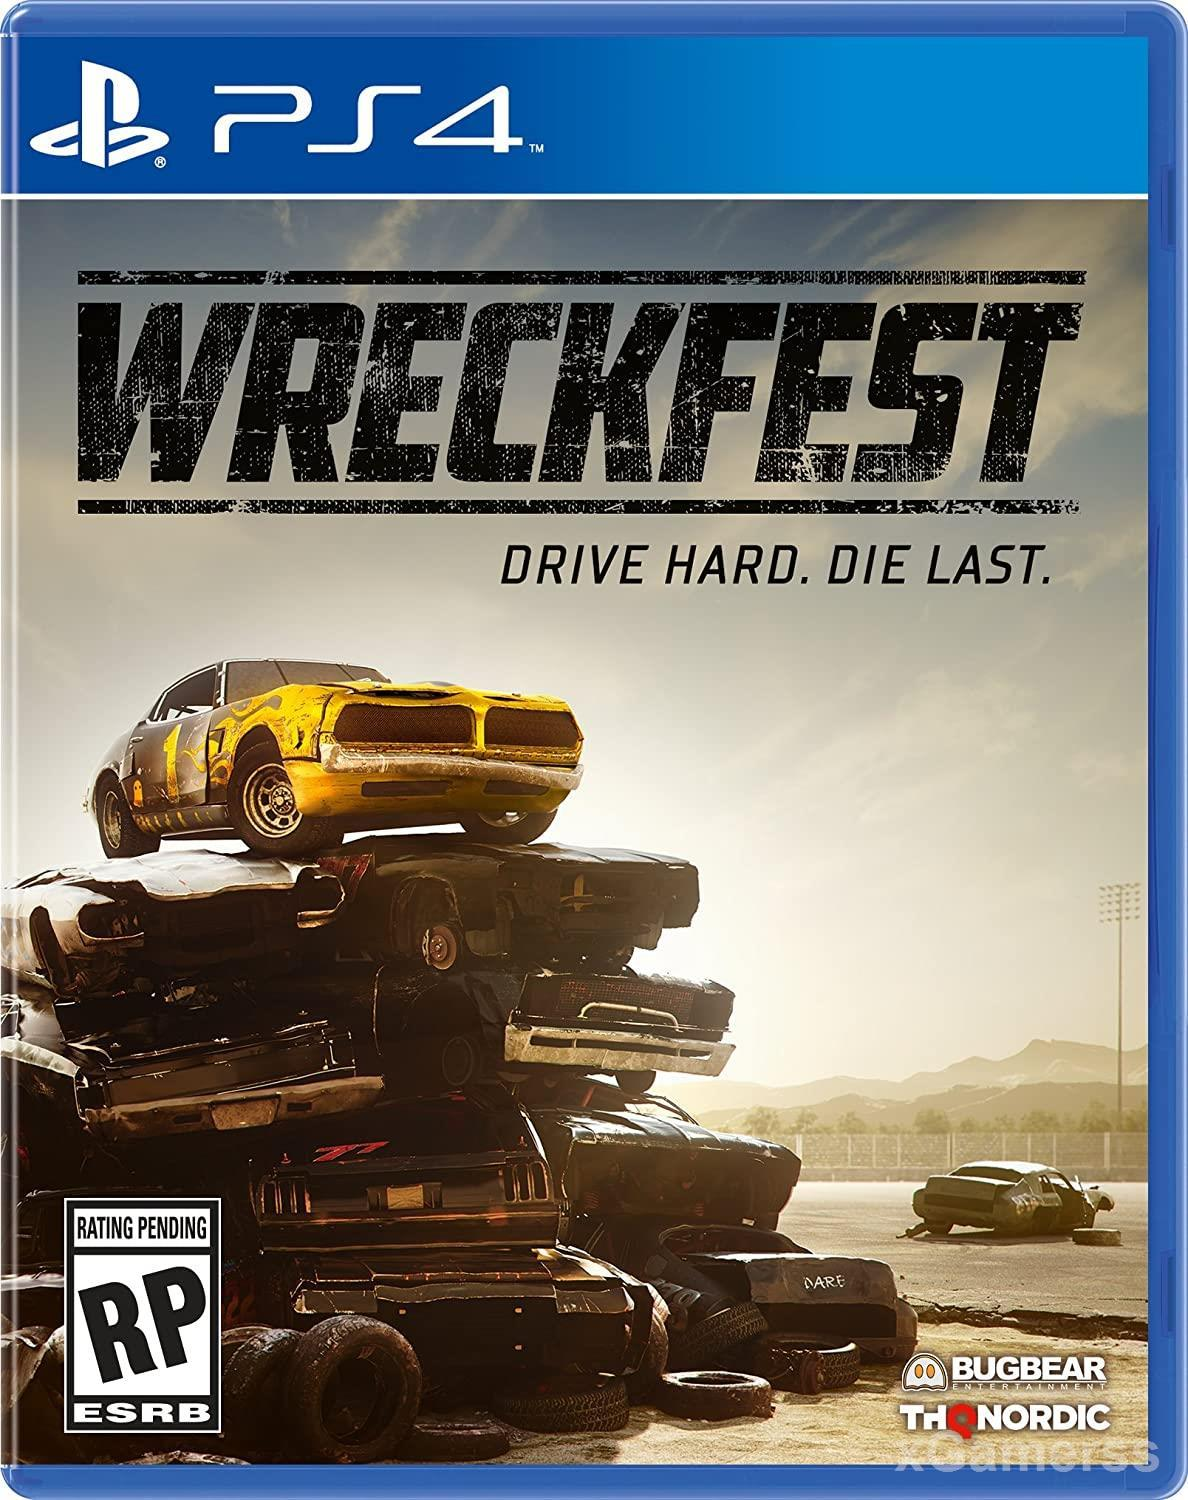 Wreckfest - it is about being as destructive as possible and piling up those wreckages along the way